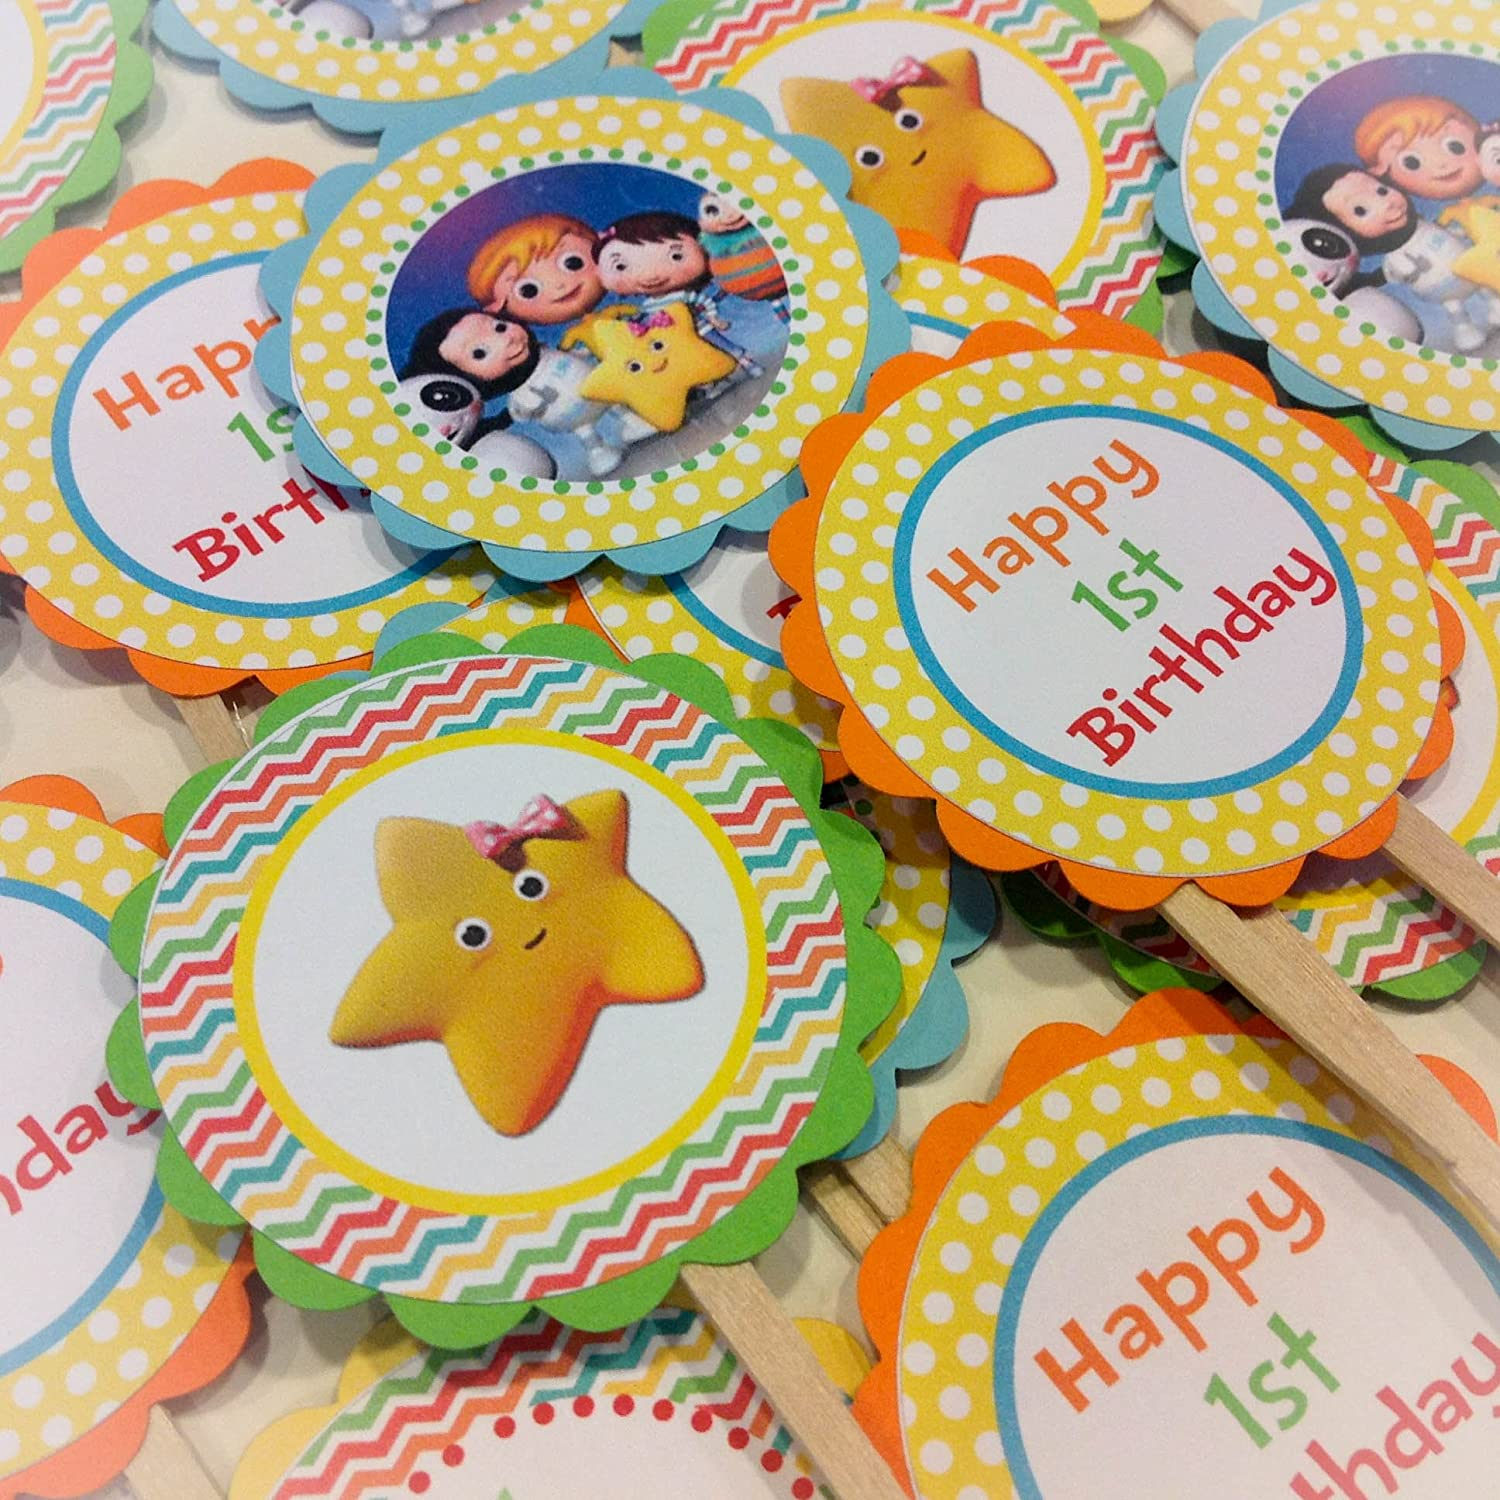 Amazon.com: PARTY PACK SPECIAL   Little Baby Bum Inspired Happy Birthday  Collection   Rainbow Chevron, Yellow Polka Dots U0026 Orange, Green, Yellow And  Blue ...